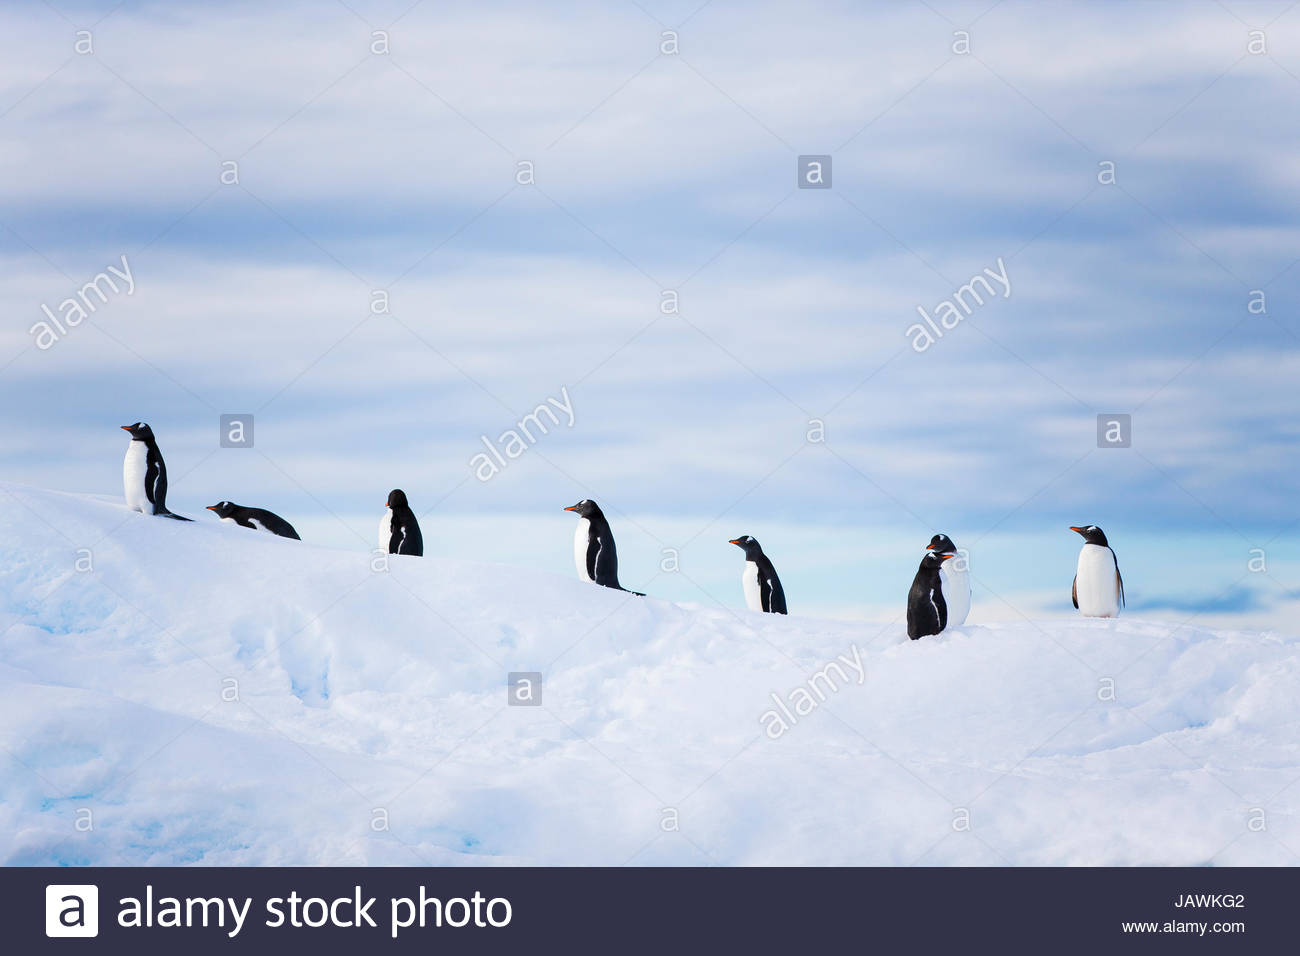 Penguins on top of an iceberg in Antarctica. Stock Photo